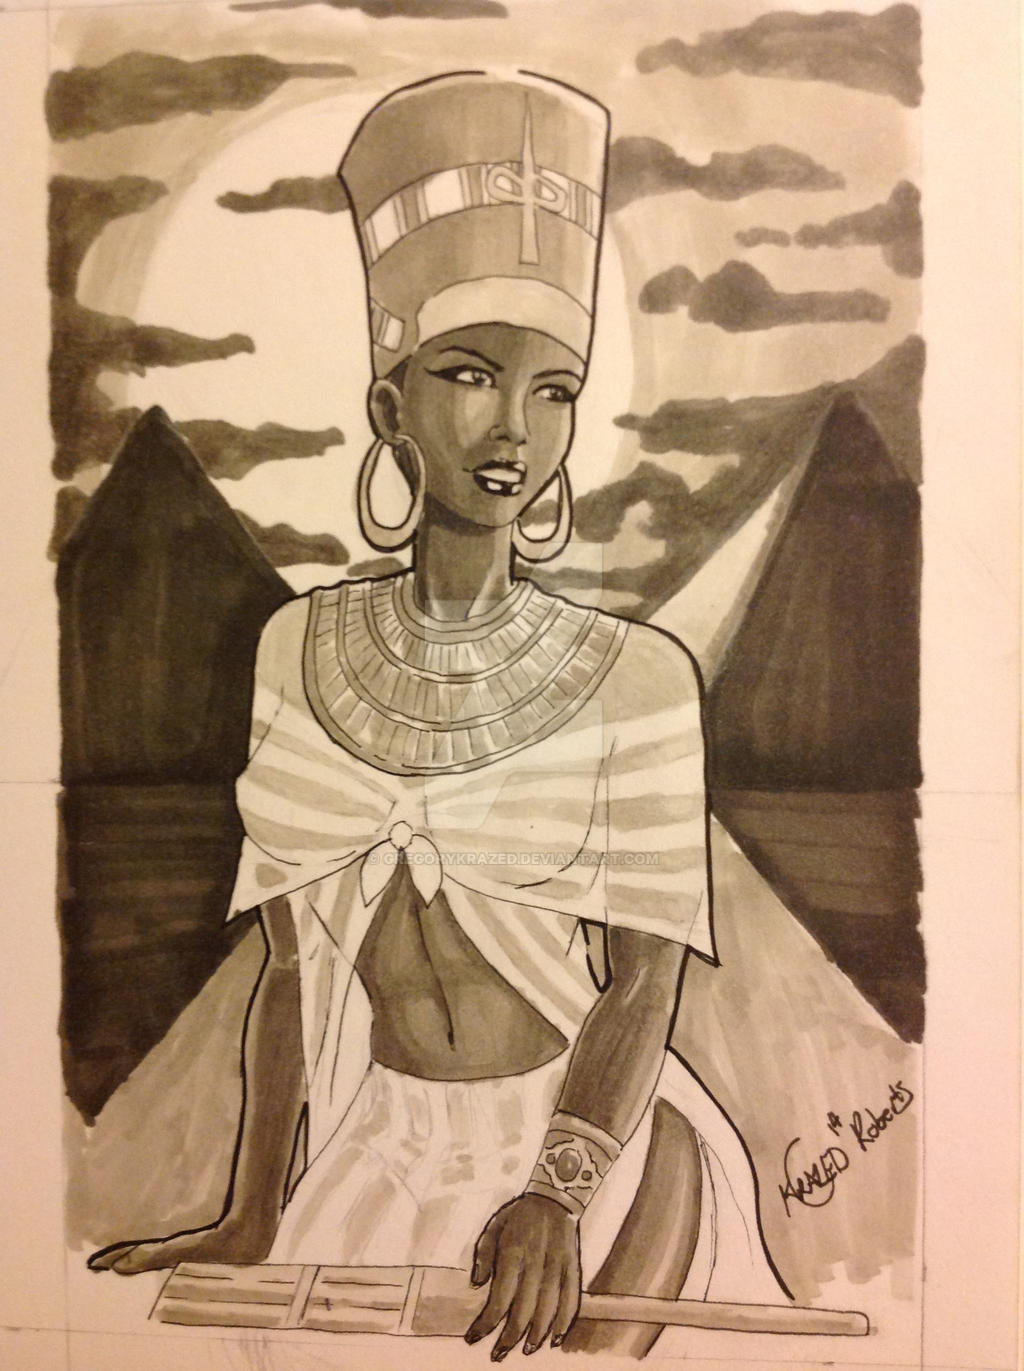 Queen Nefertiti by GregoryKrazed on DeviantArt